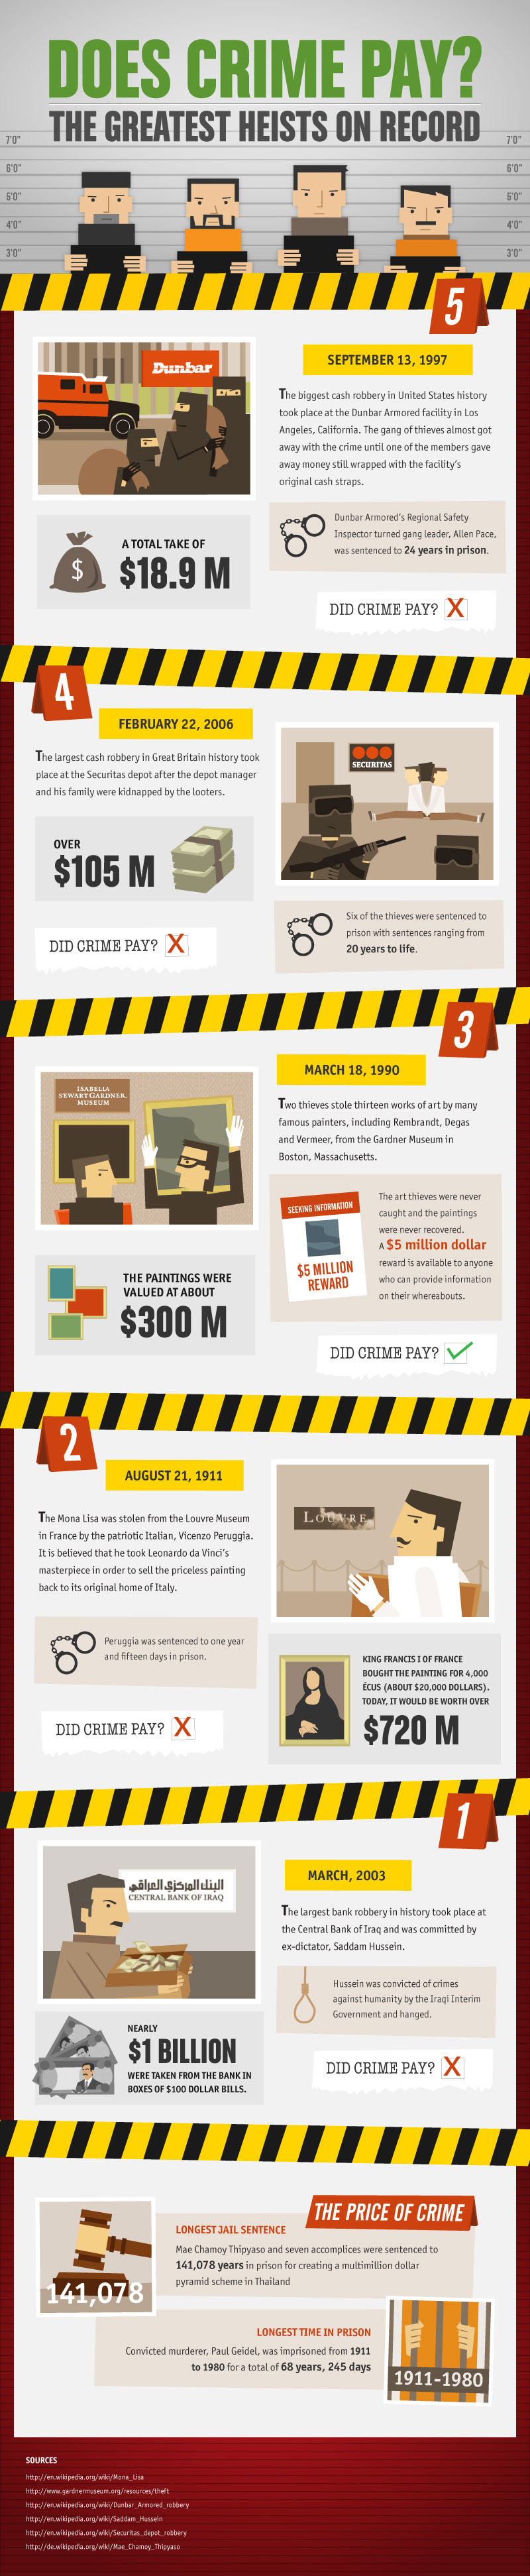 does crime pay Does Crime Pay? (Infographic)